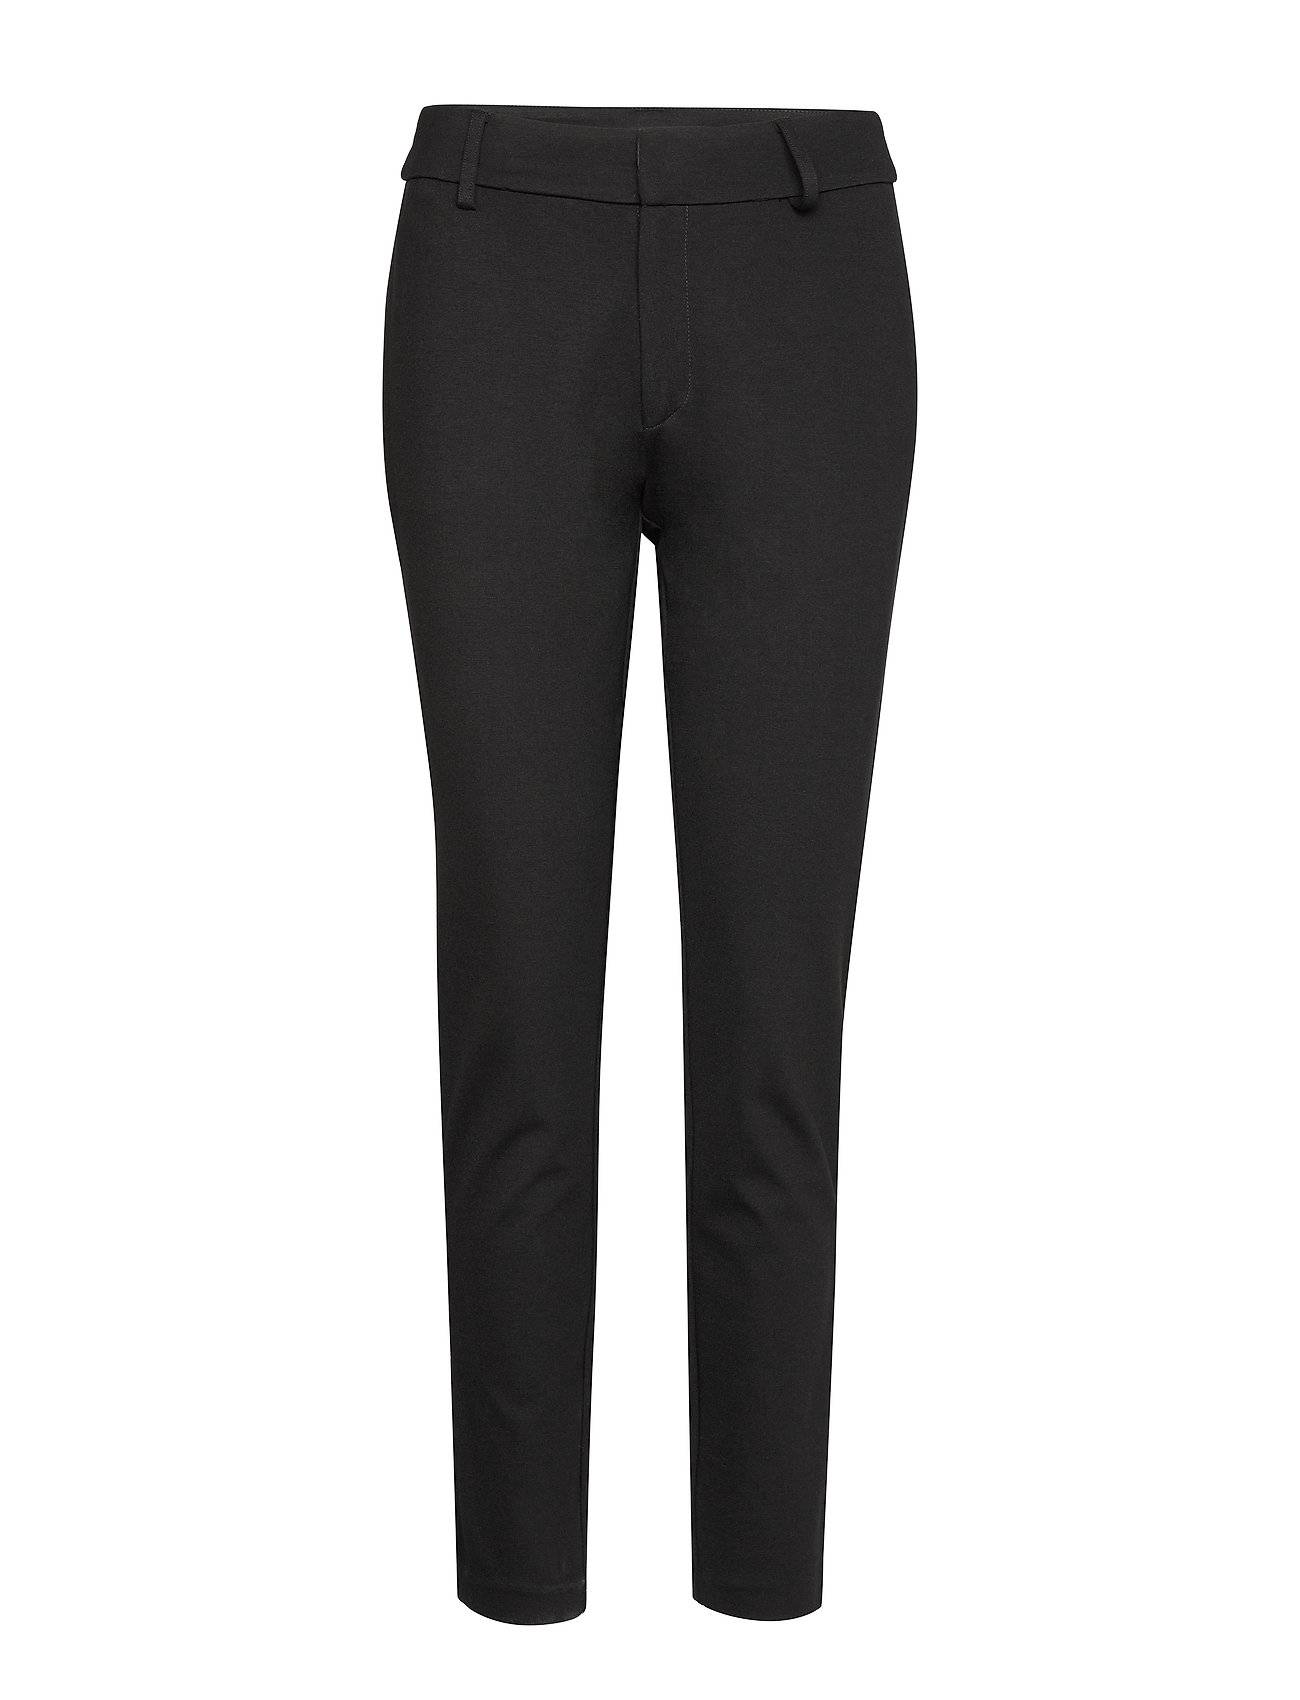 Soft Rebels Sofia 7/8 Pant - BLACK